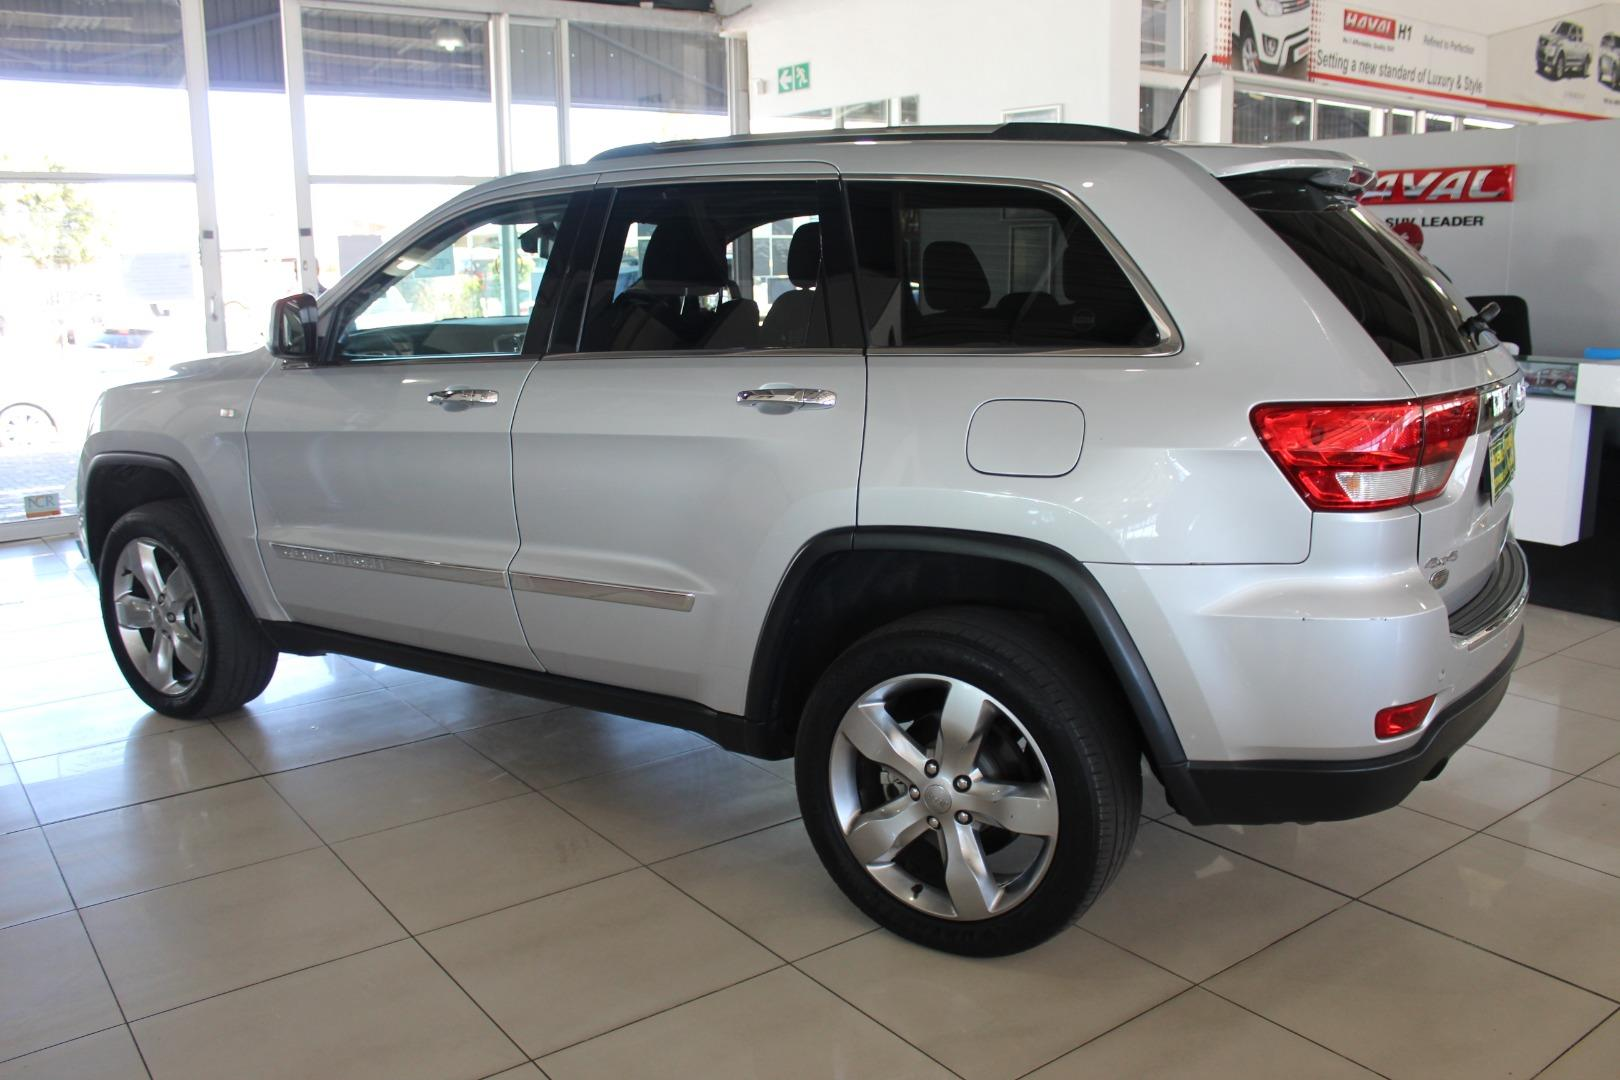 2013 Jeep Grand Cherokee 3.0CRD Overland Off-Road Adventure II- Picture 7